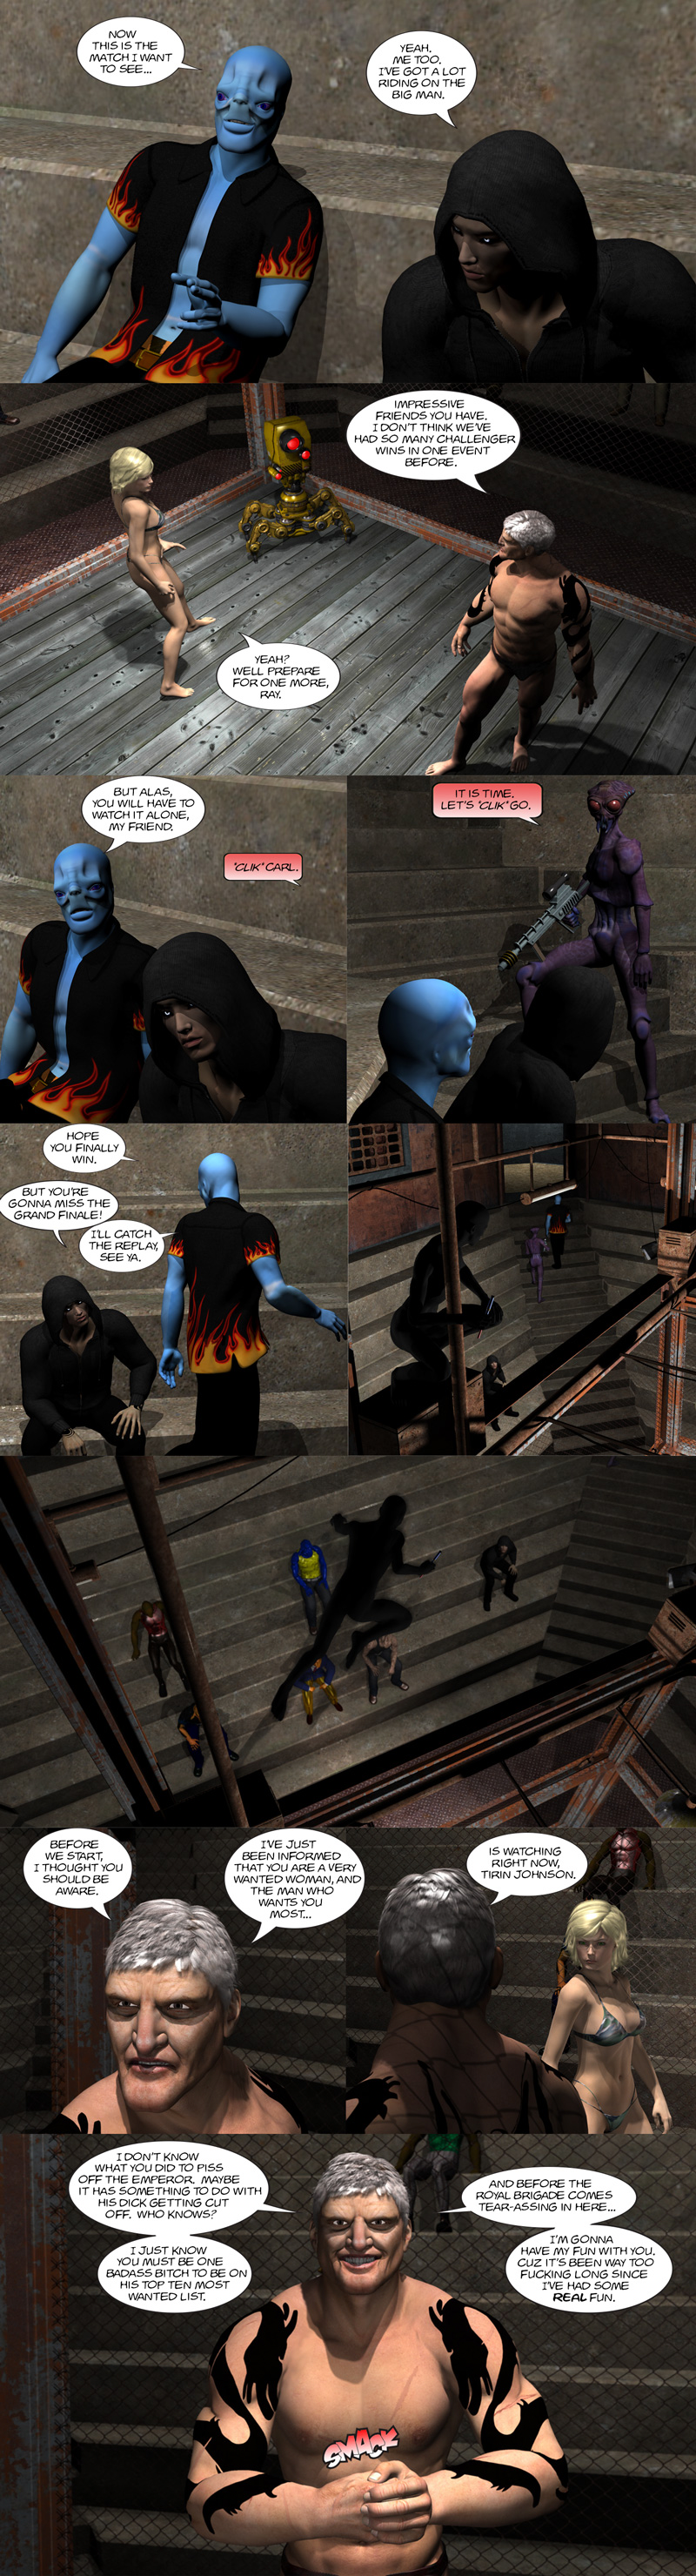 Chapter 9, page 10 – Ray vs Tirin begins